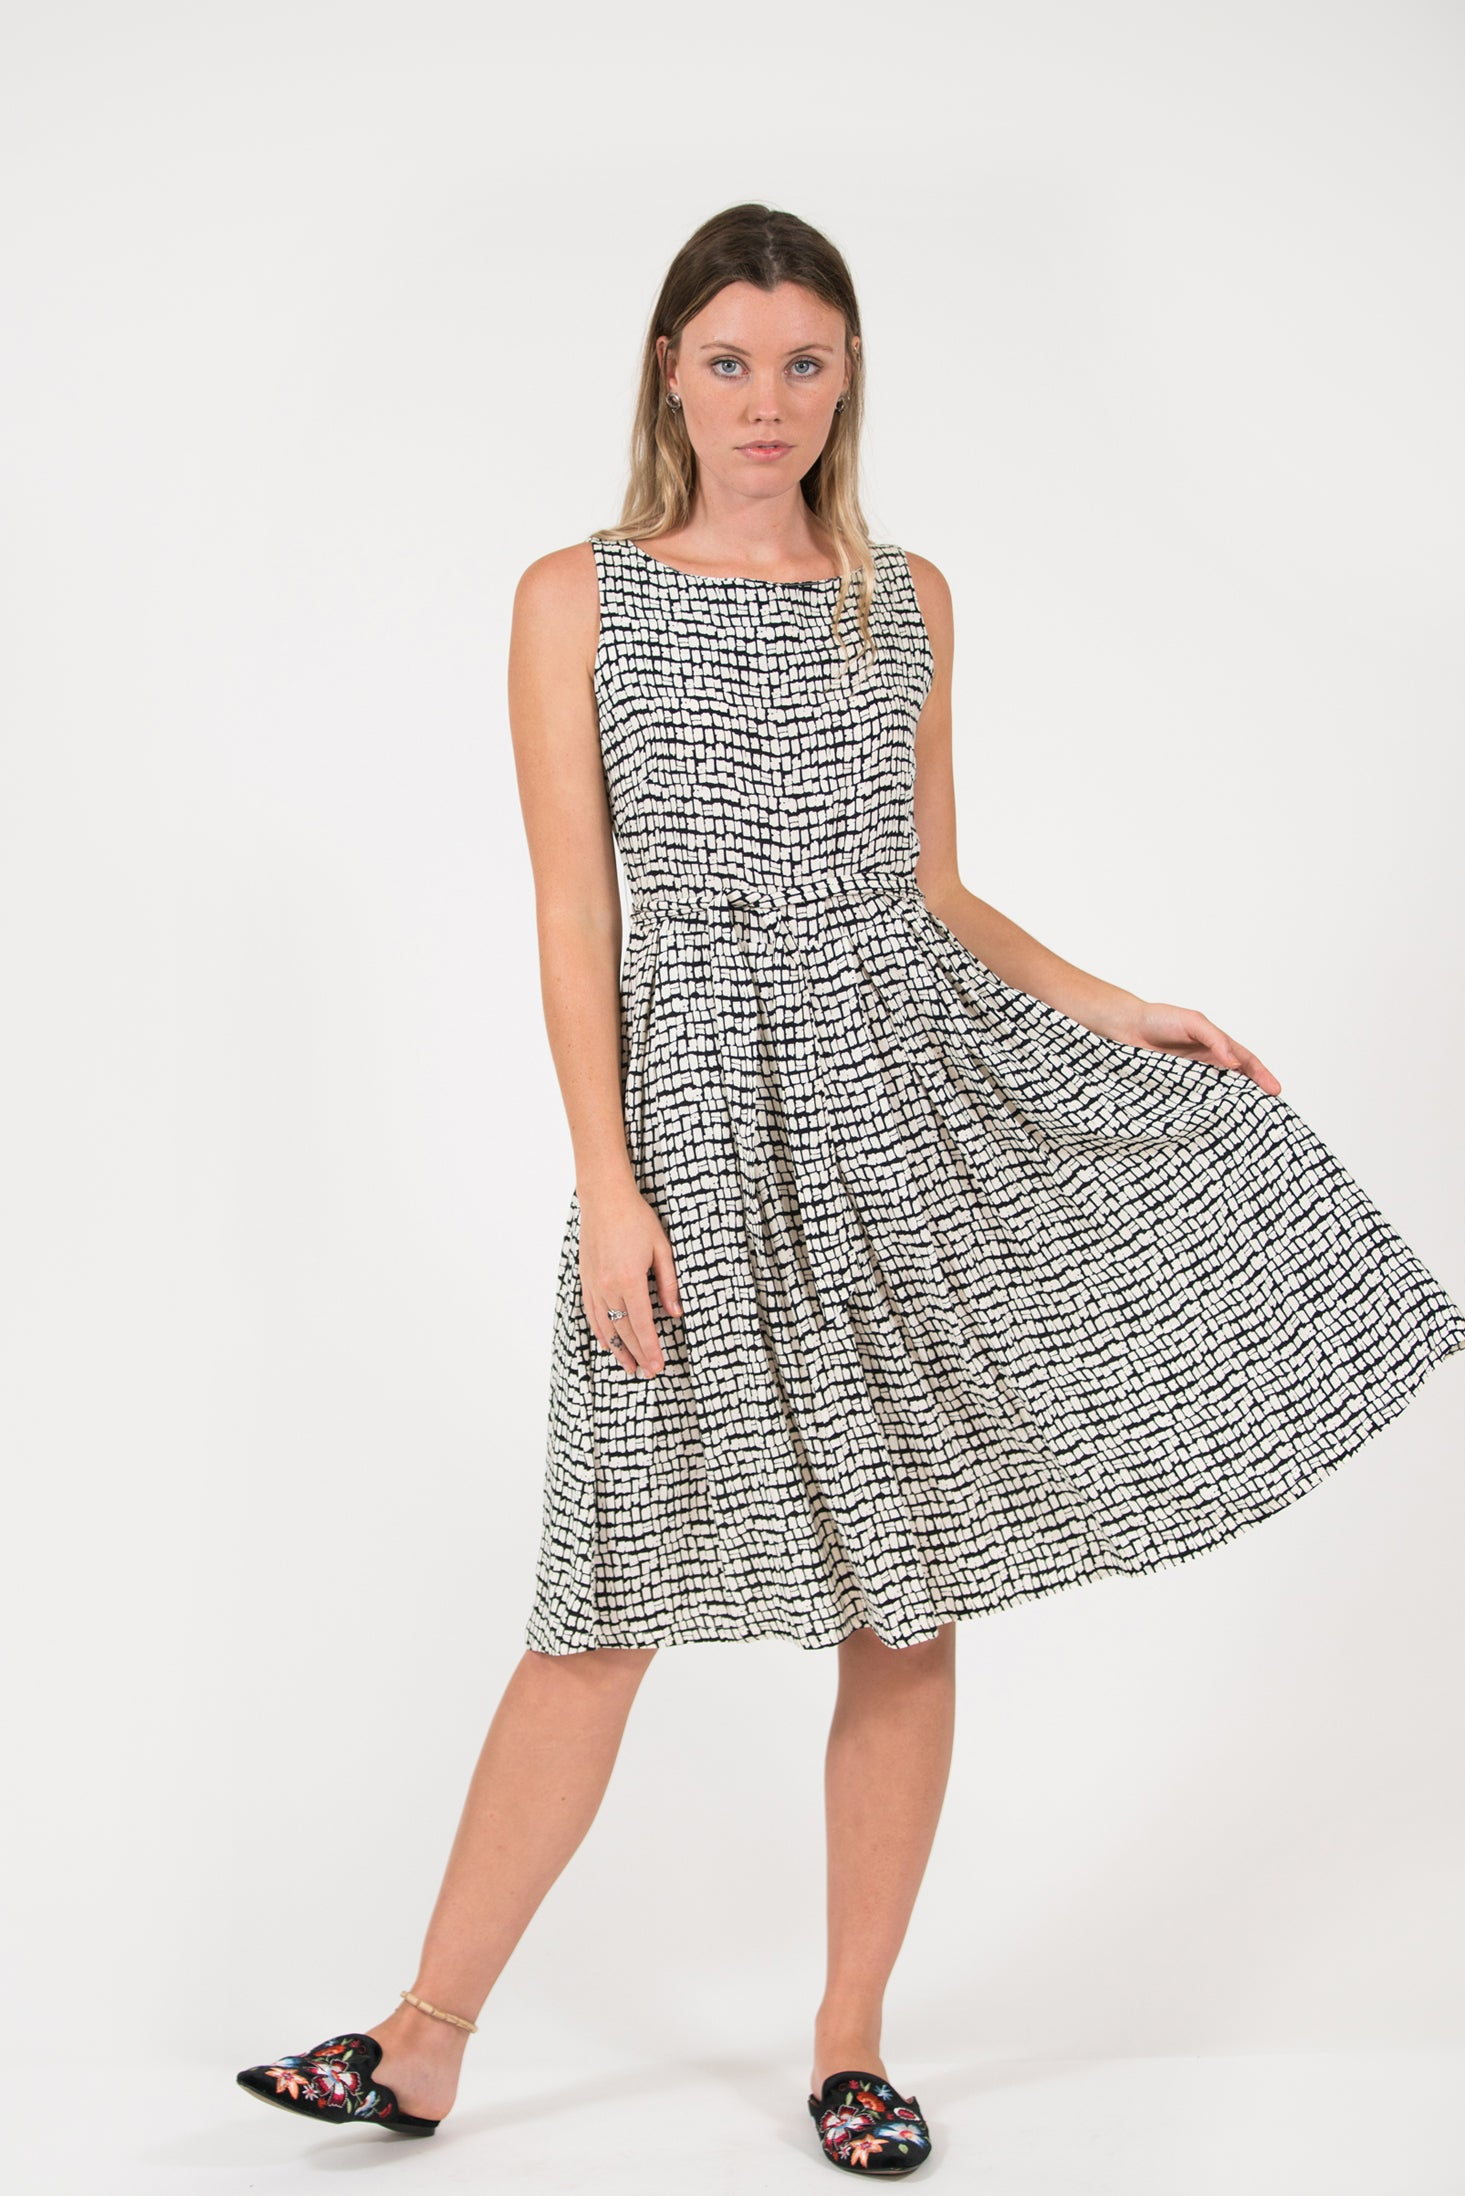 printed Isabella dress classic vintage style pleated skirt fitted waist flattering